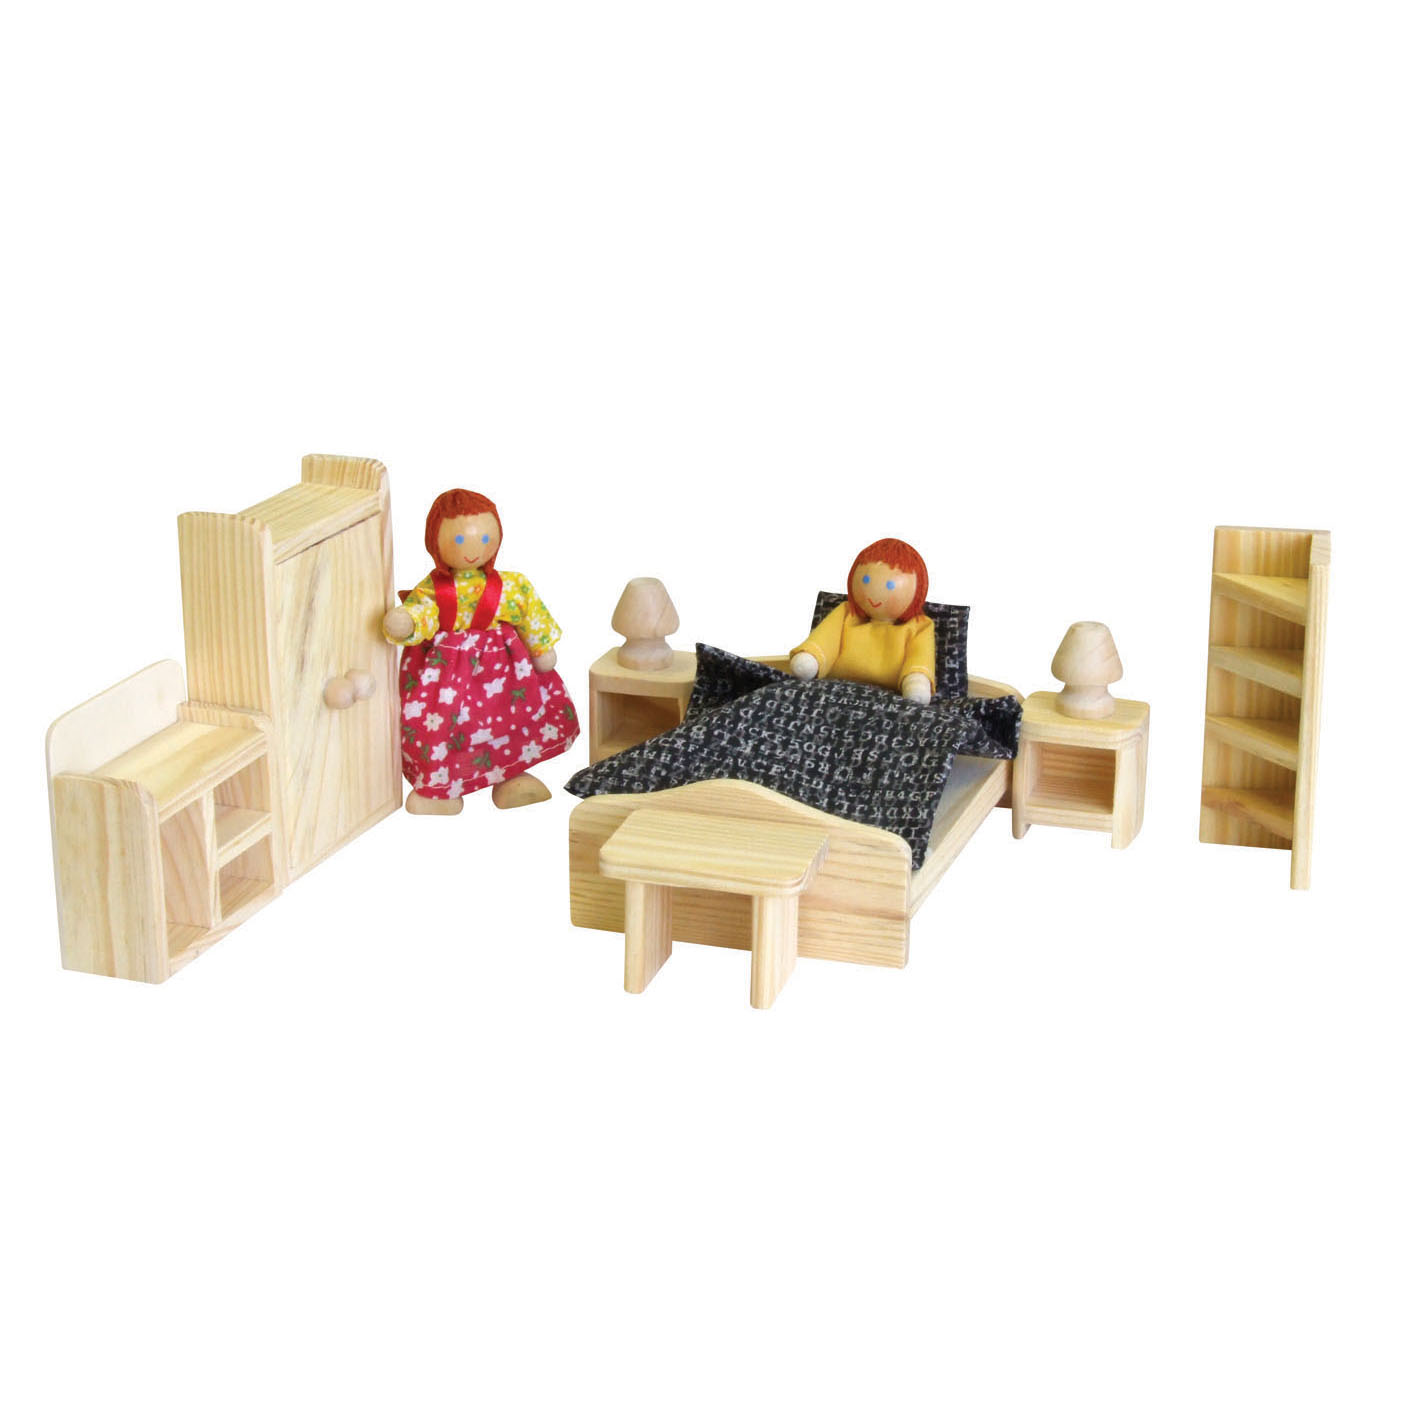 Wooden Dollhouse Furniture Package By Fun Factory Romantic Flair